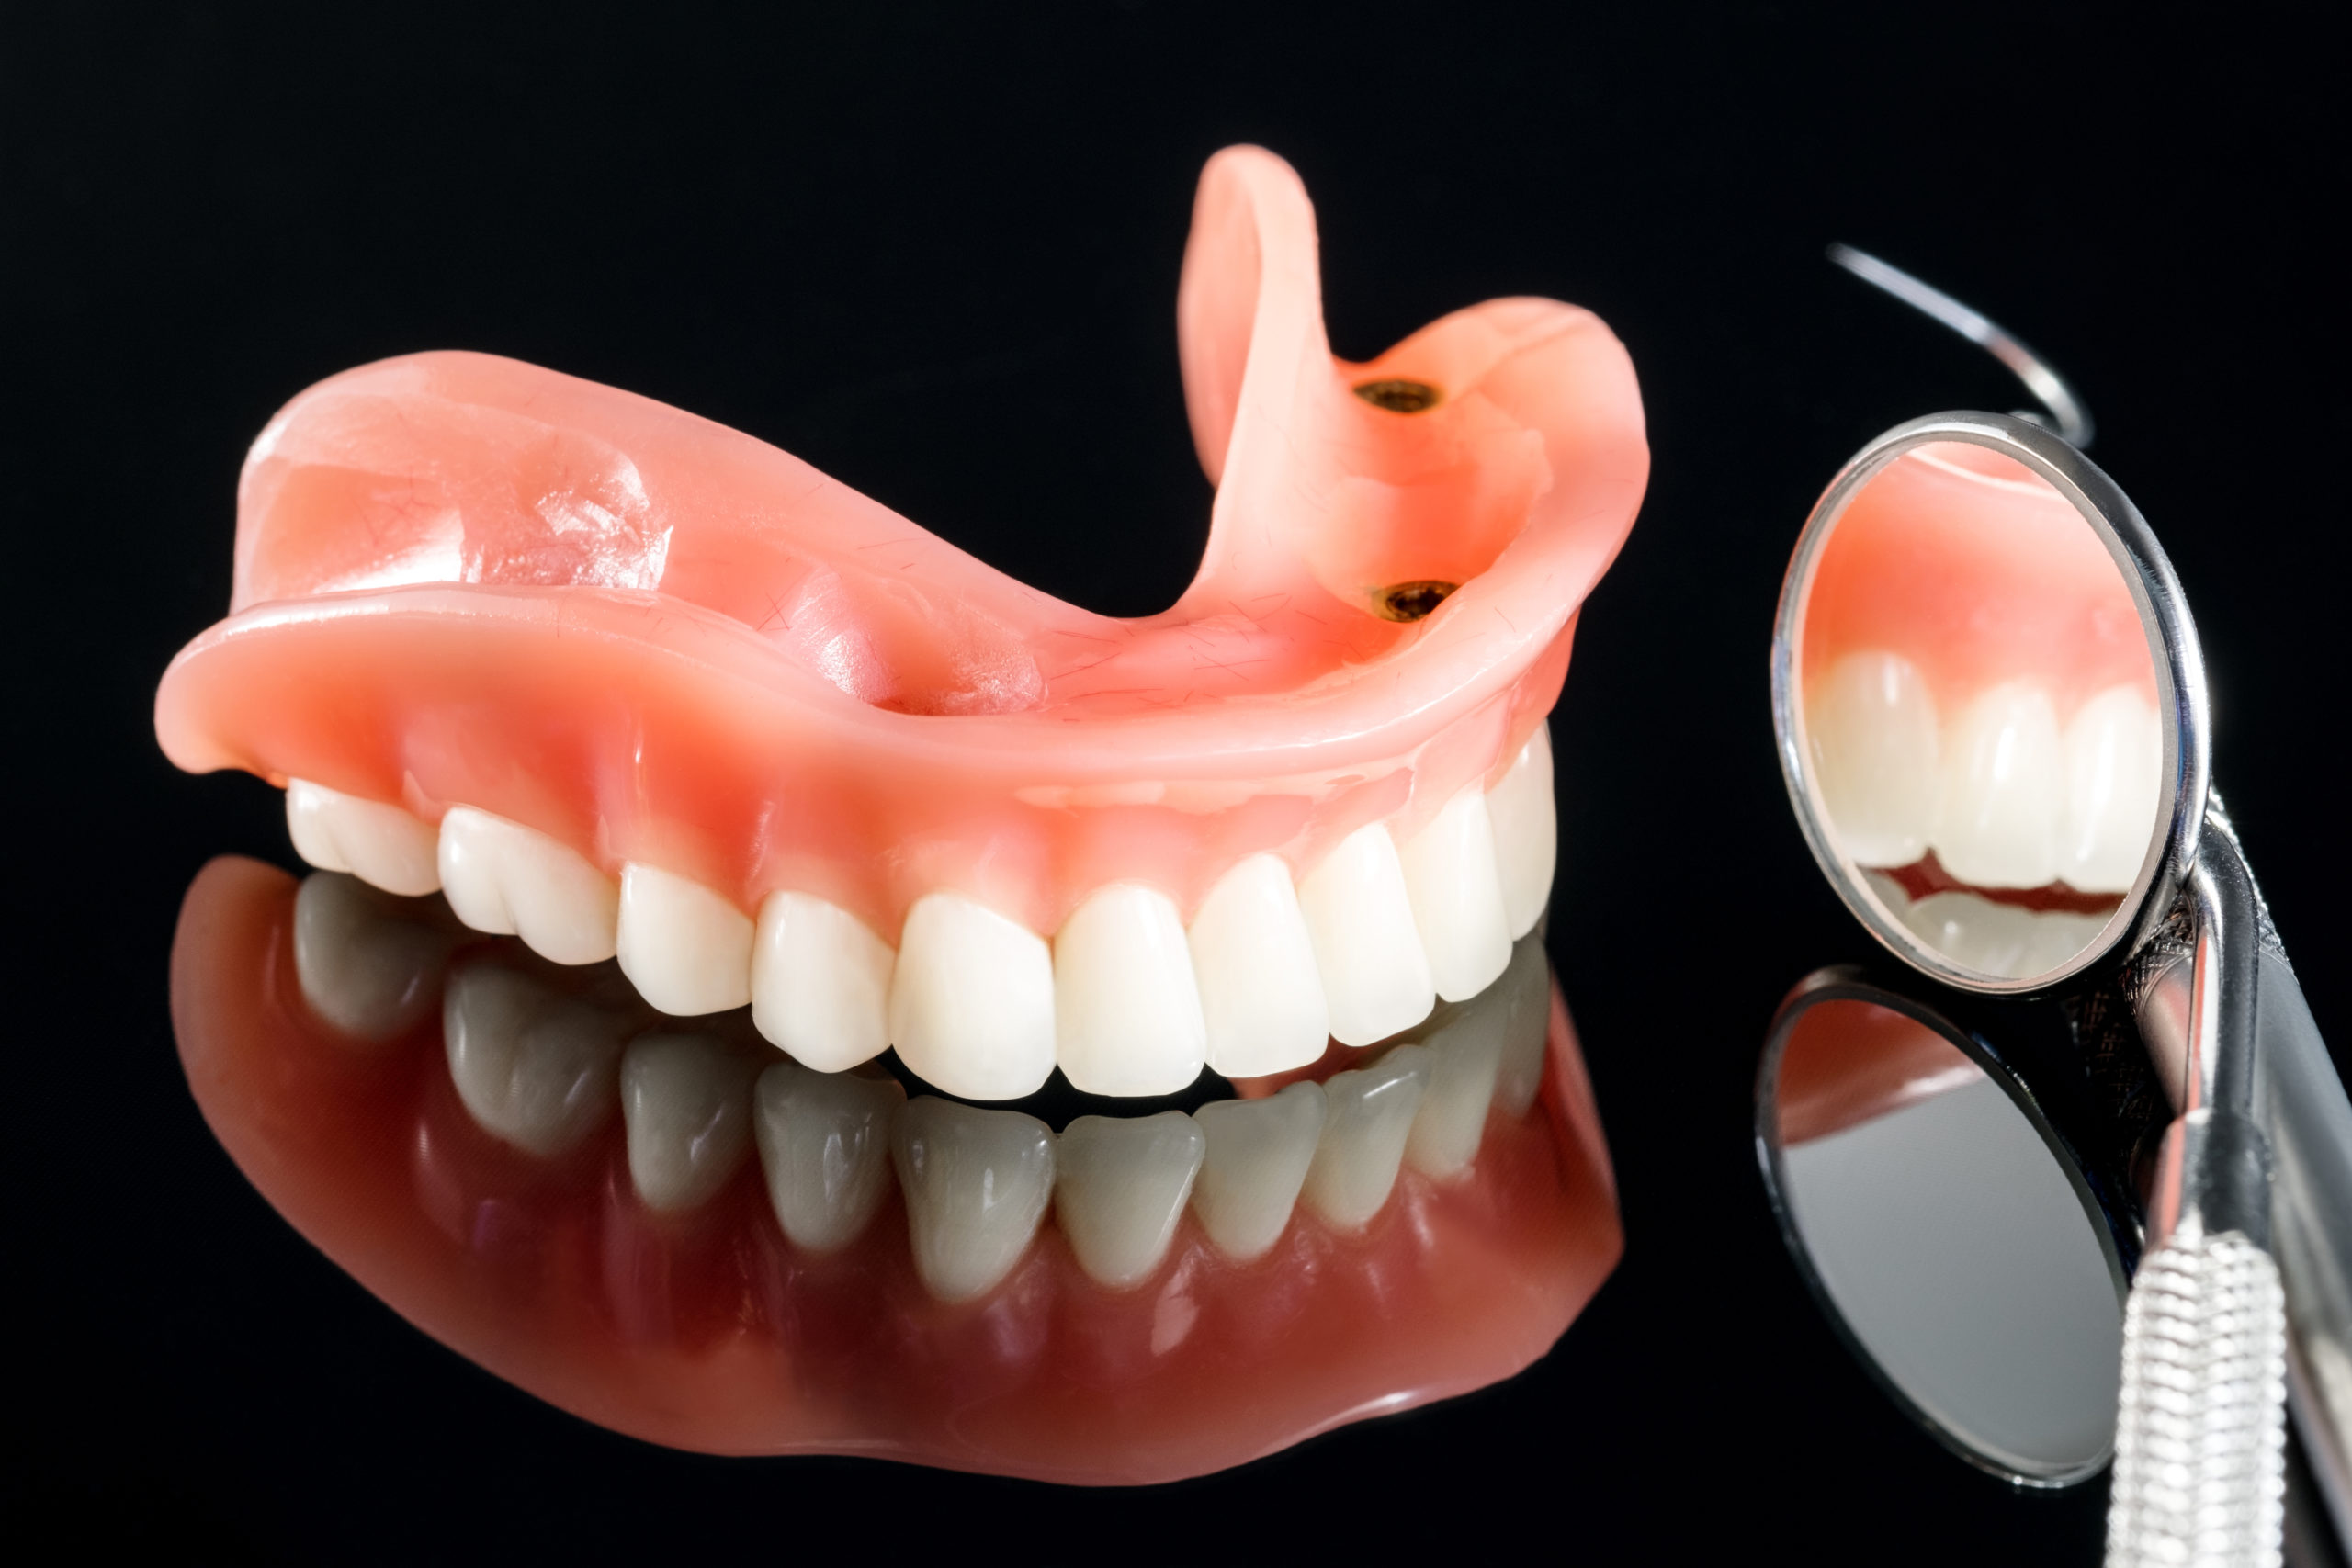 Overdentures - What Are They? kensington court clinic